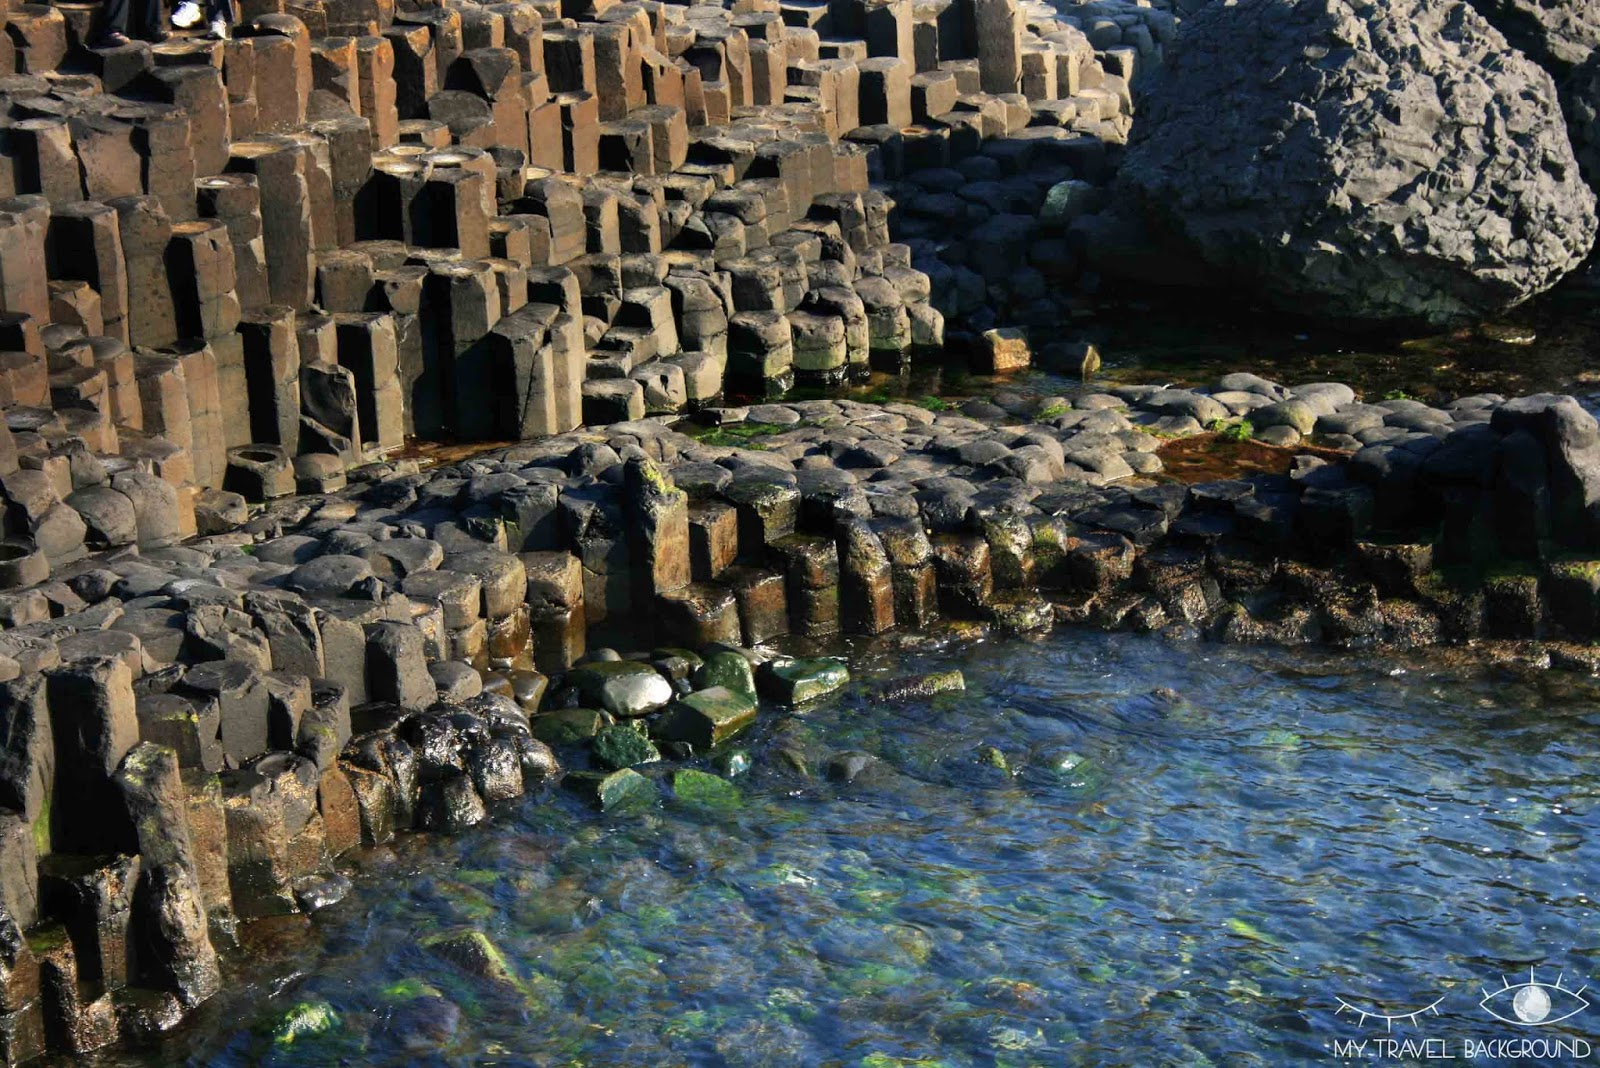 My Travel Background : Along the wild atlantic Way, Irlande du Nord - The Giants Causeway, la Chaussée des géants